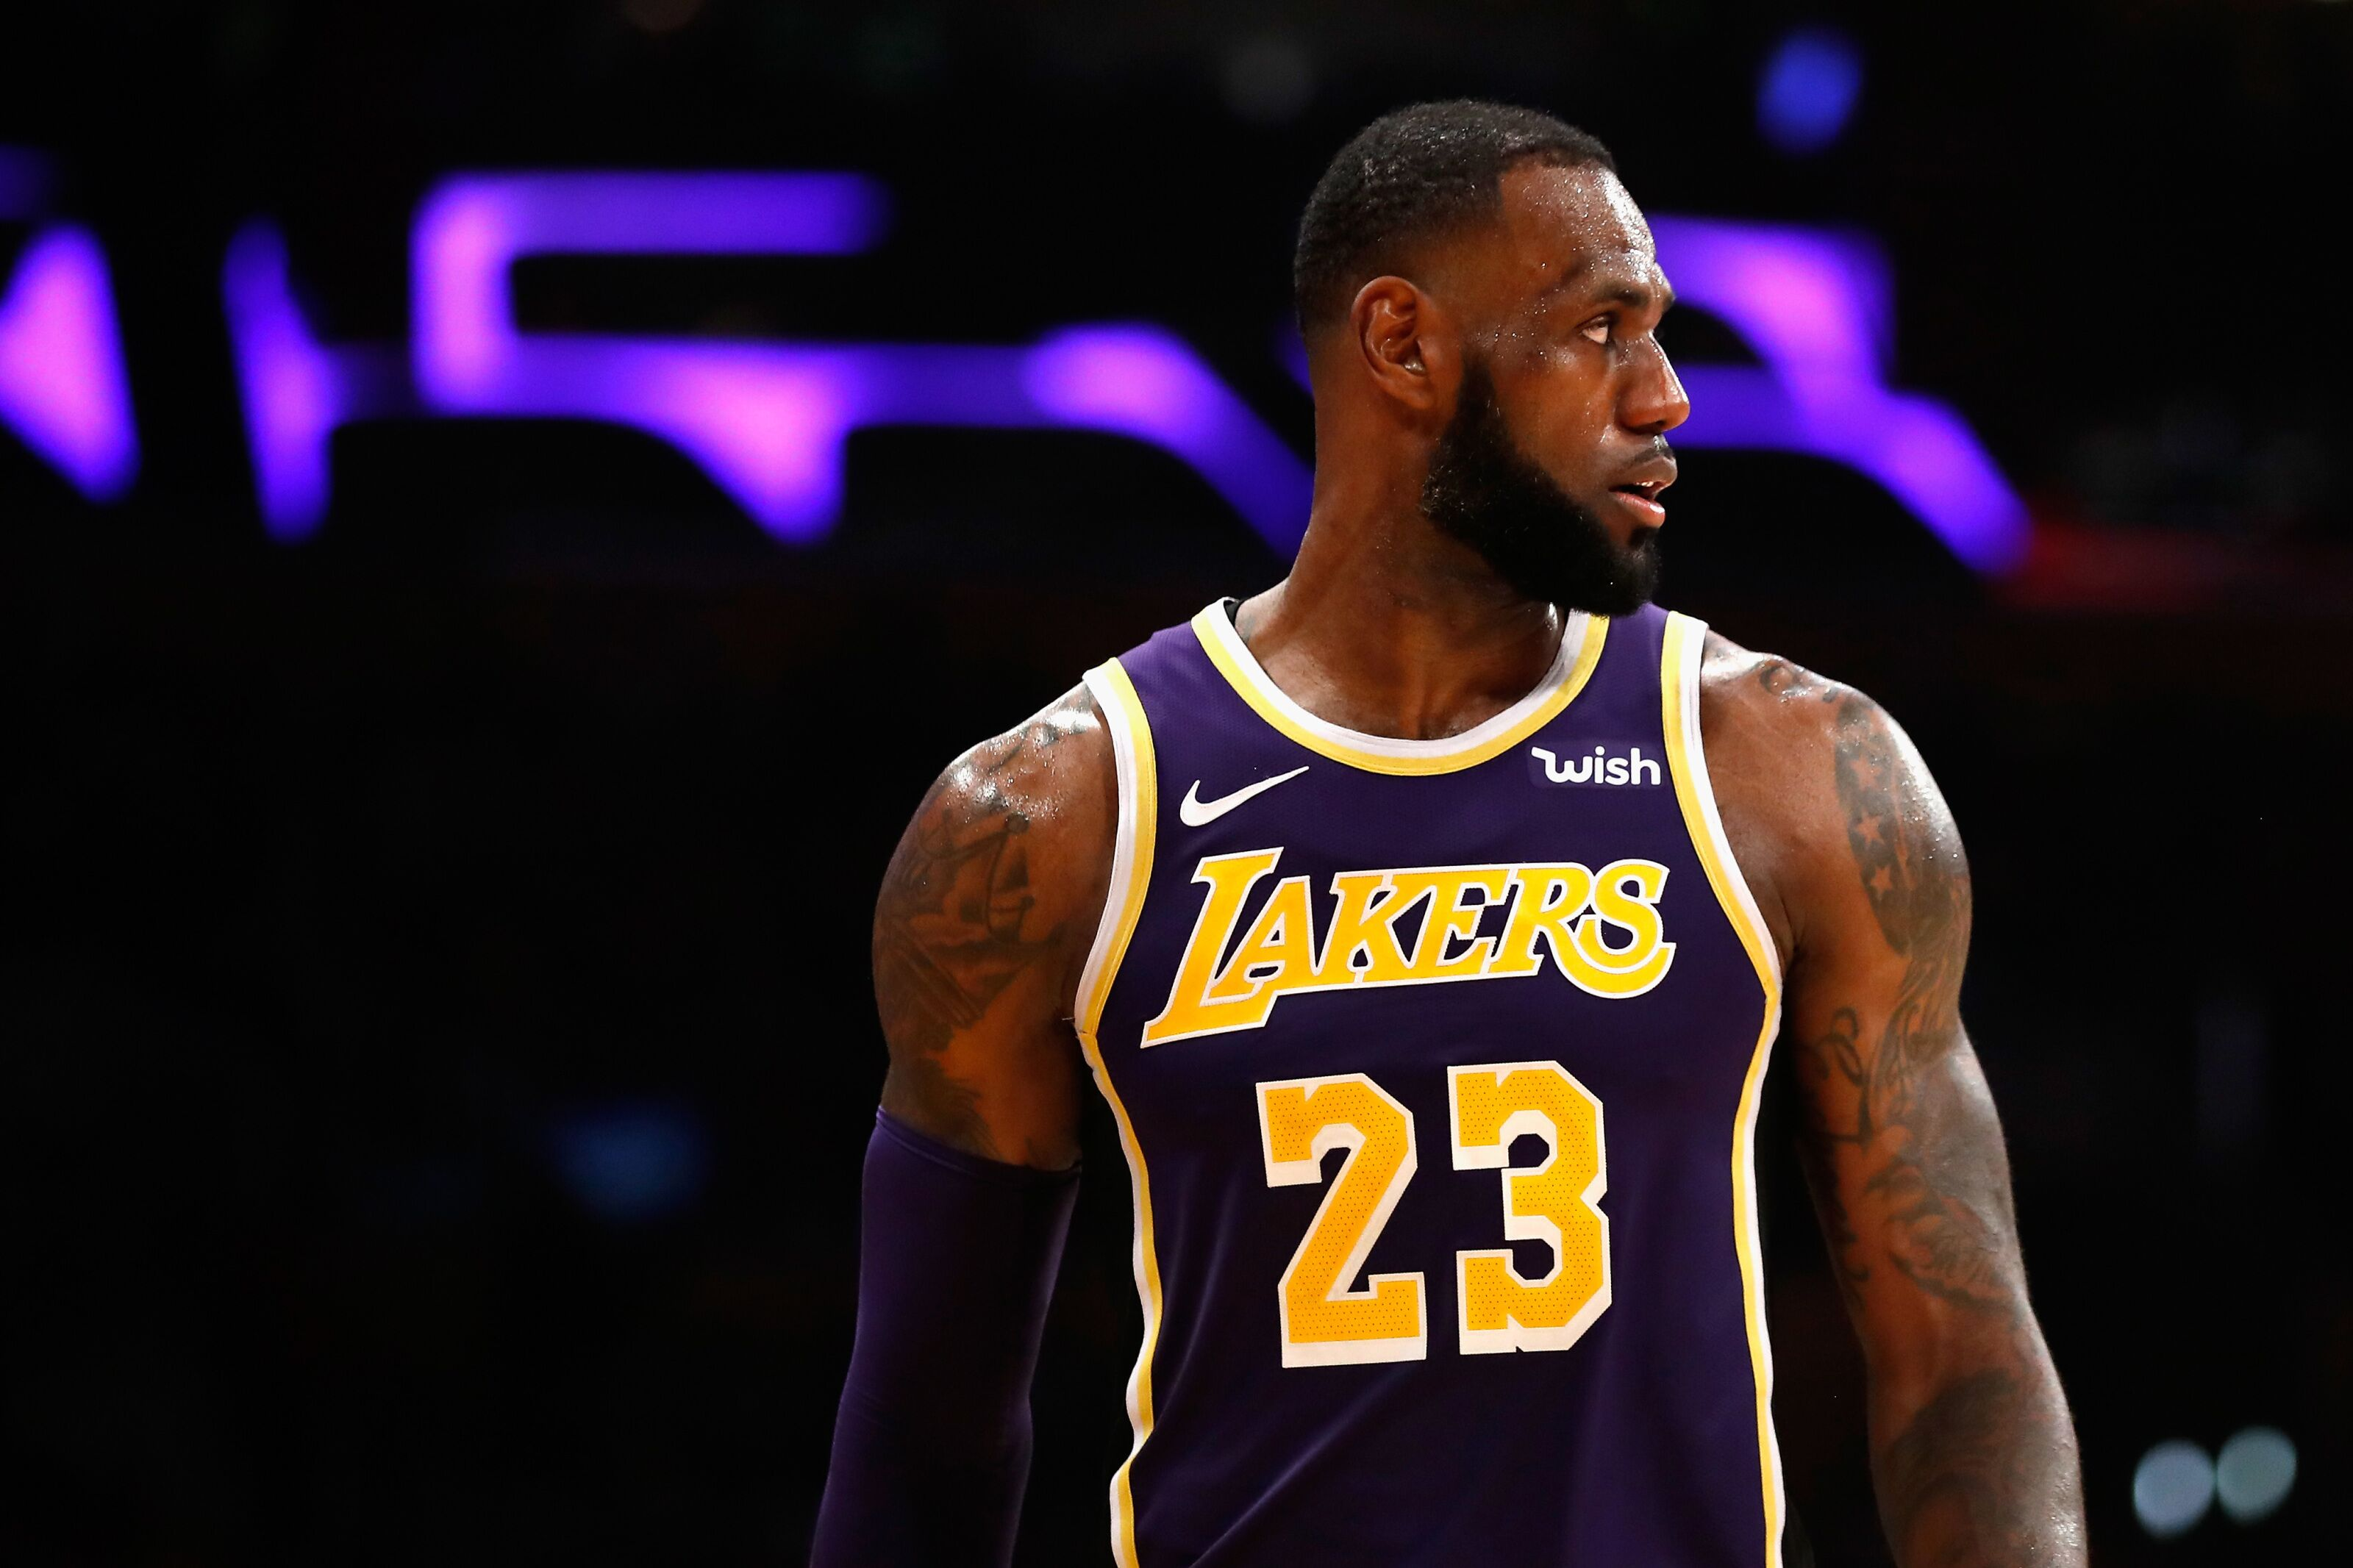 689b56d7c0e5 Los Angeles Lakers: LeBron James thinks he's the NBA's GOAT